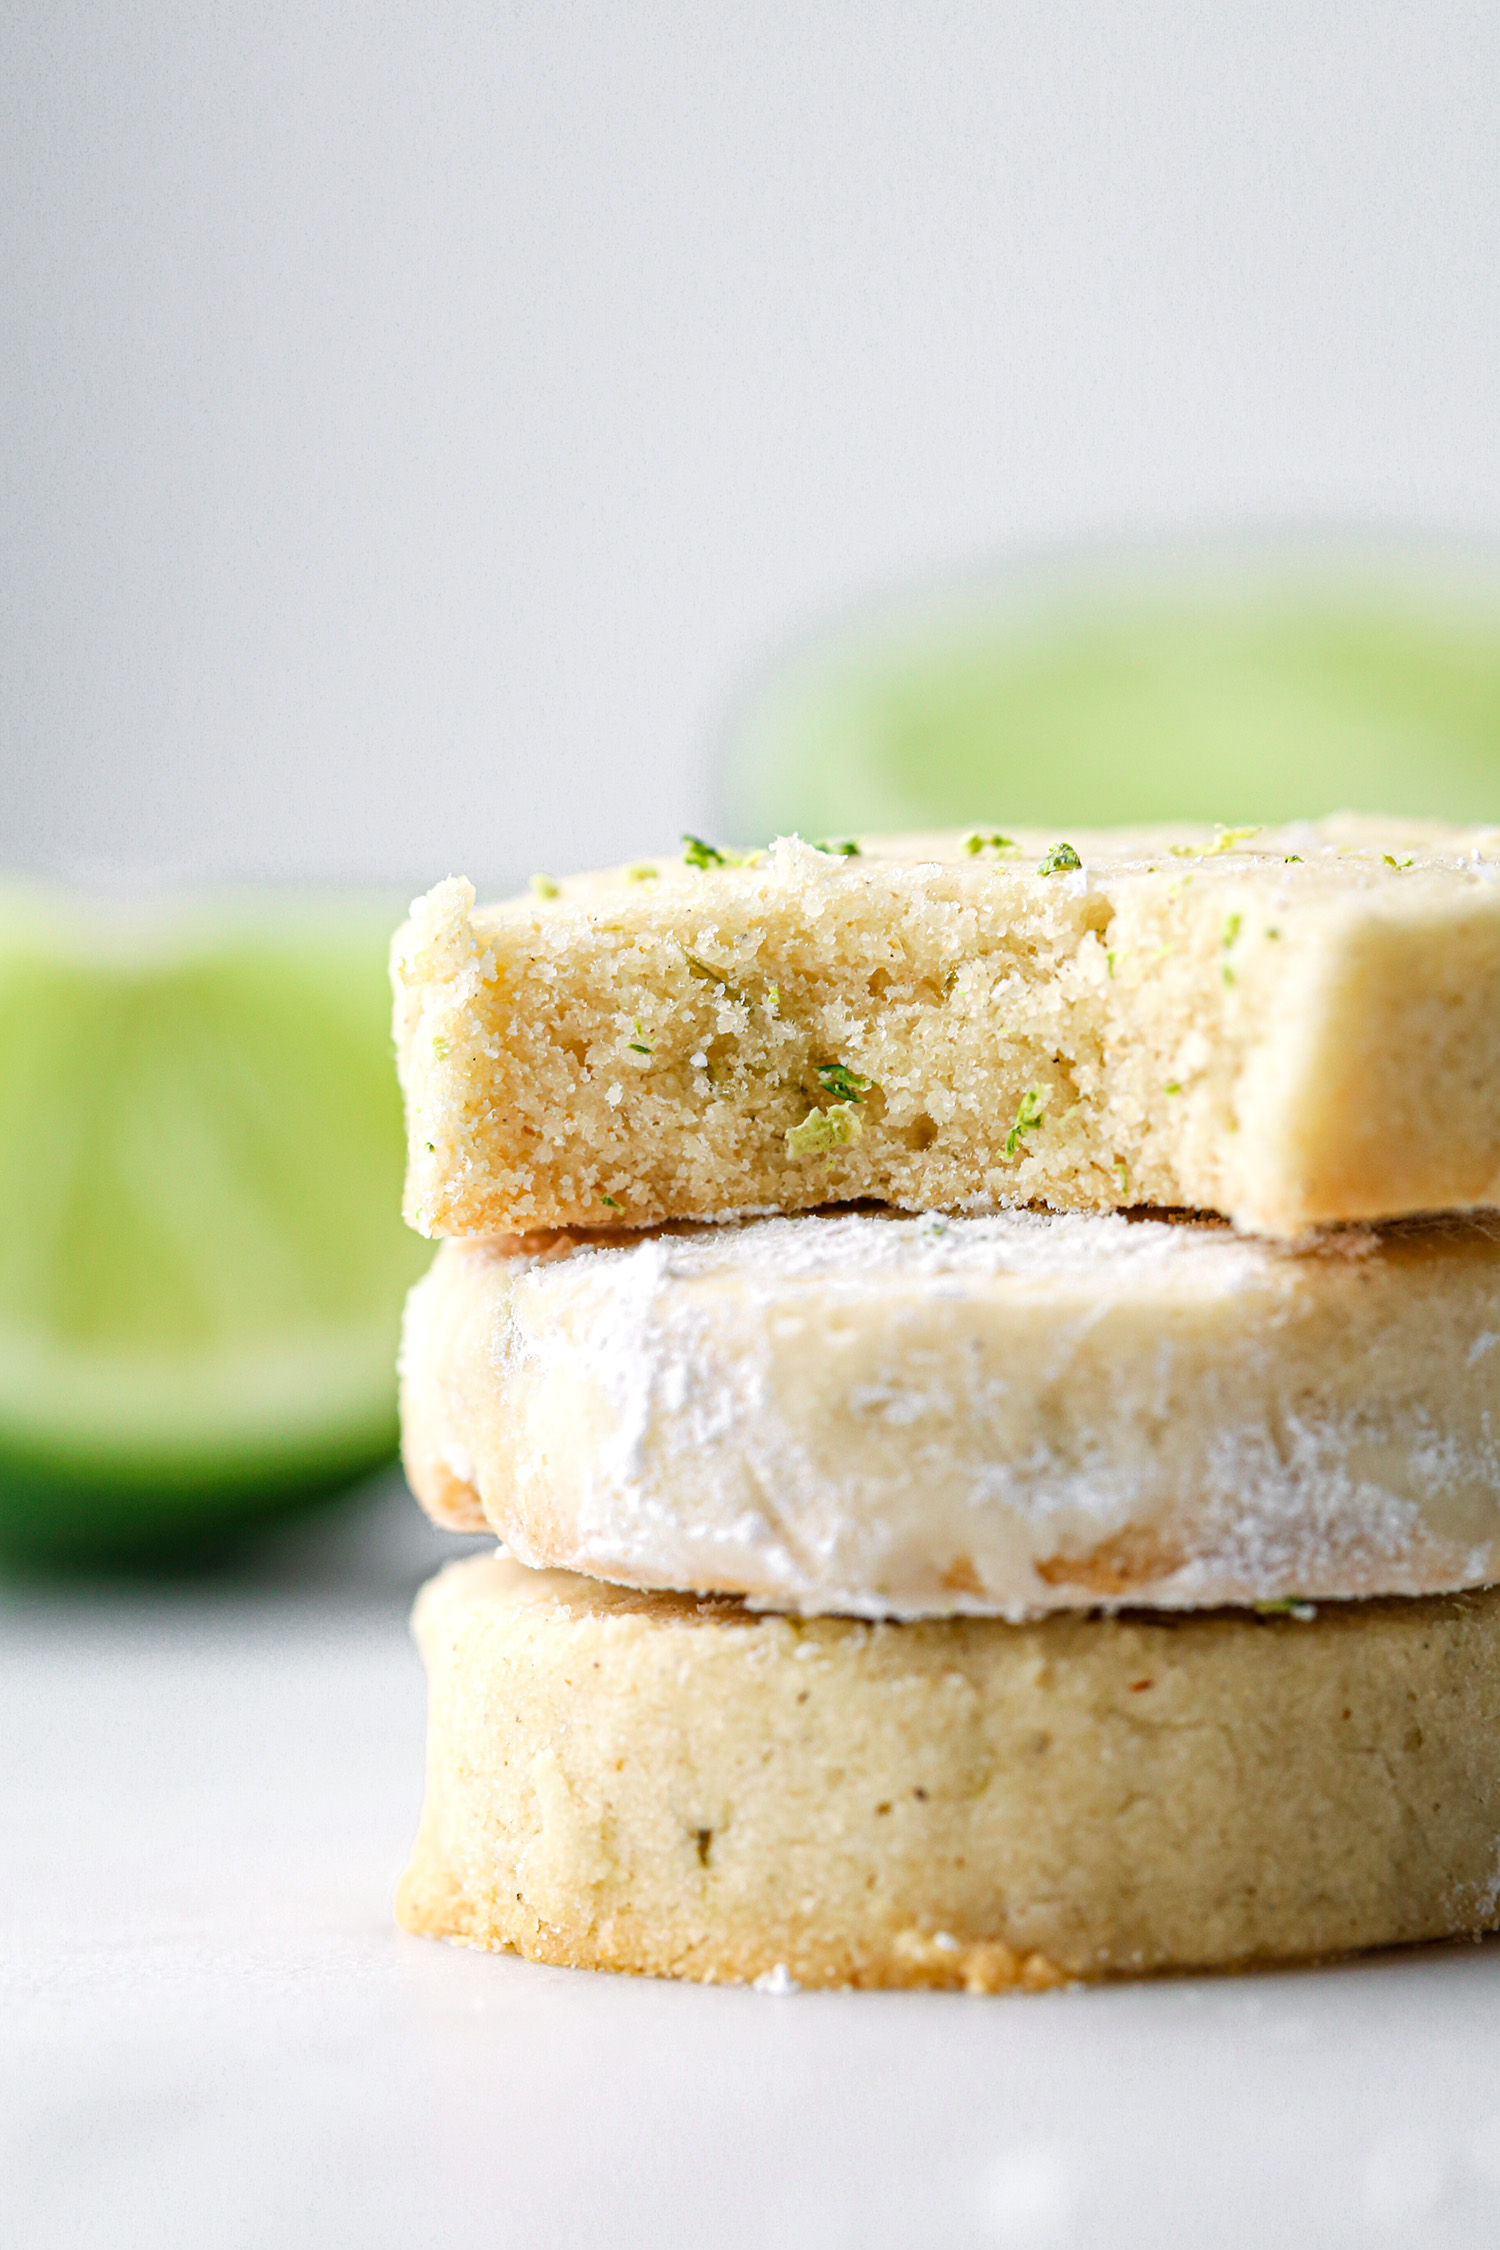 Lime Shortbread Cookie Bite | Vegan friendly with gluten and refined sugar free option